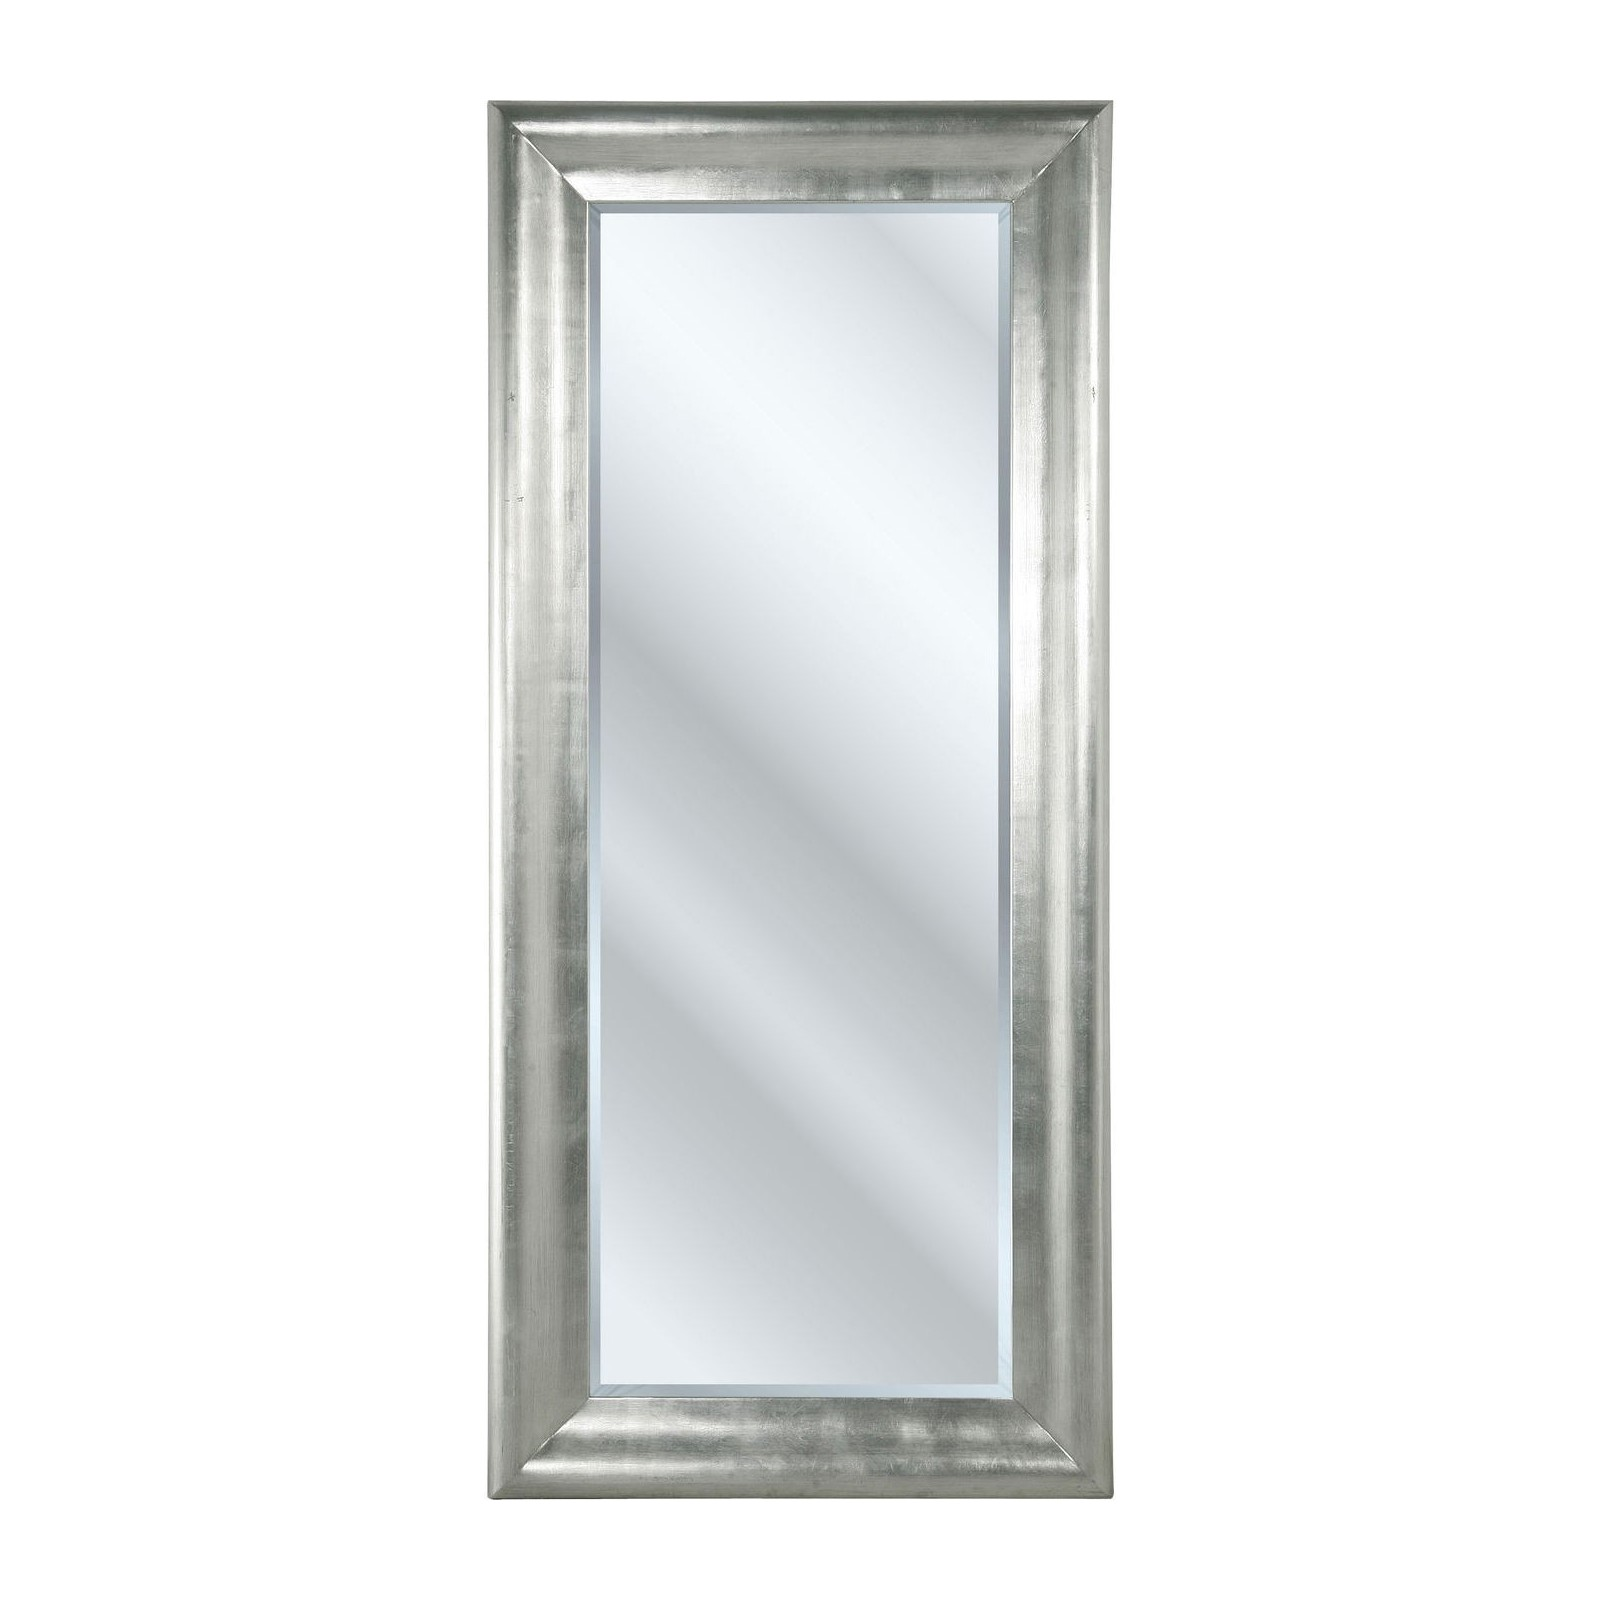 Miroir chic 200 x 90 argent kare design for Miroir seducta 90 cm